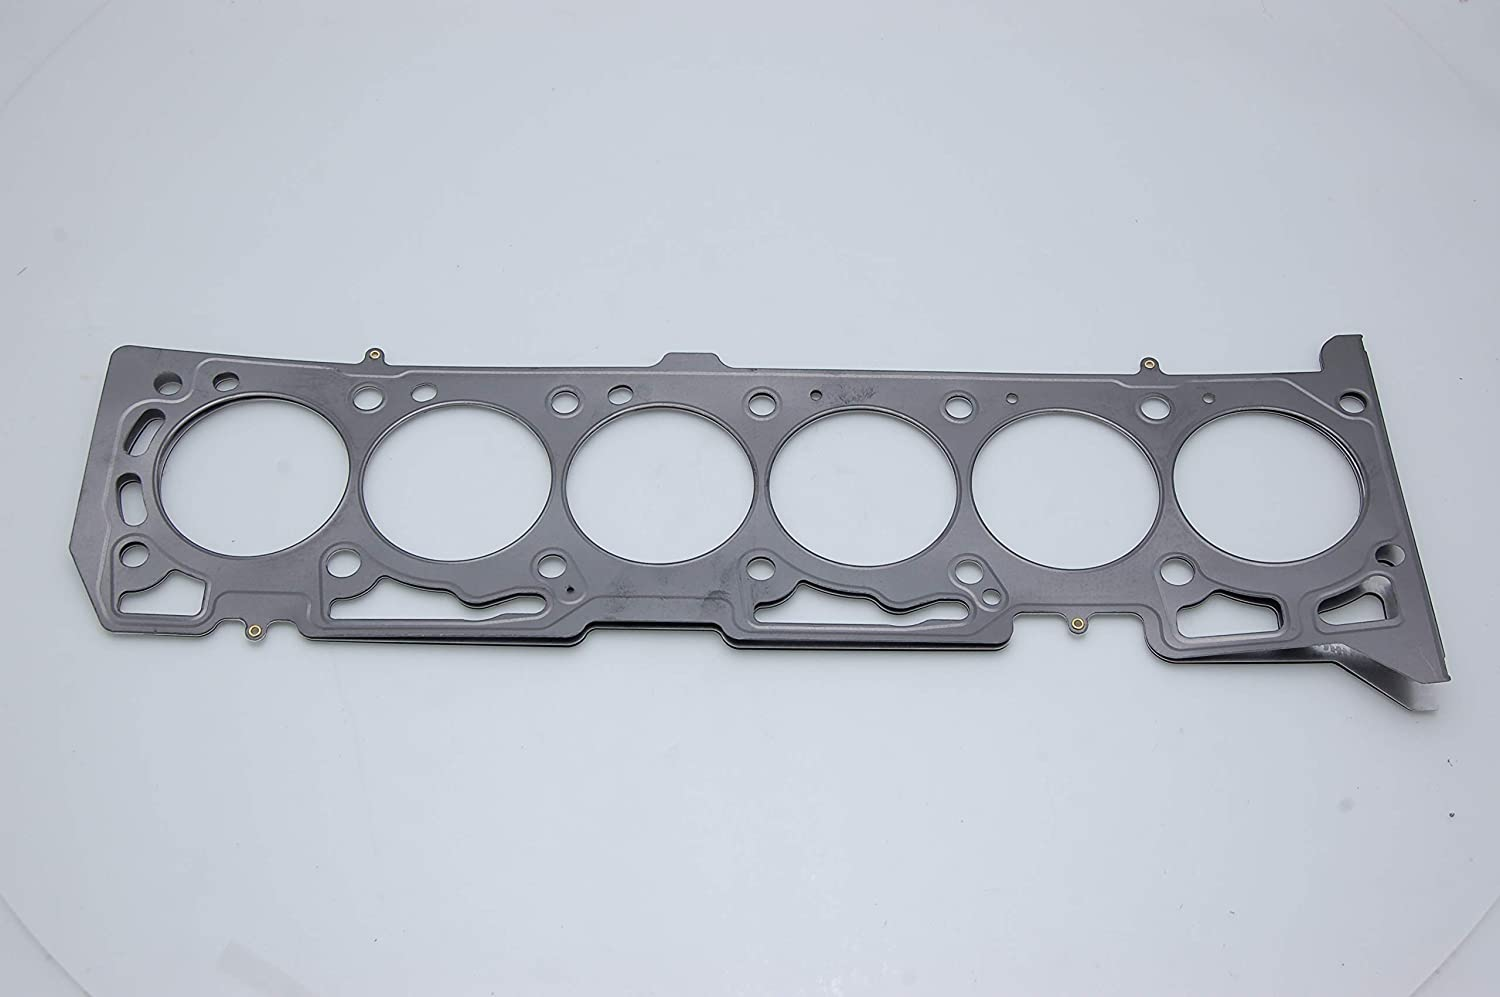 Cometic Gasket Max 62% OFF MLS Cylinder Head Series In stock